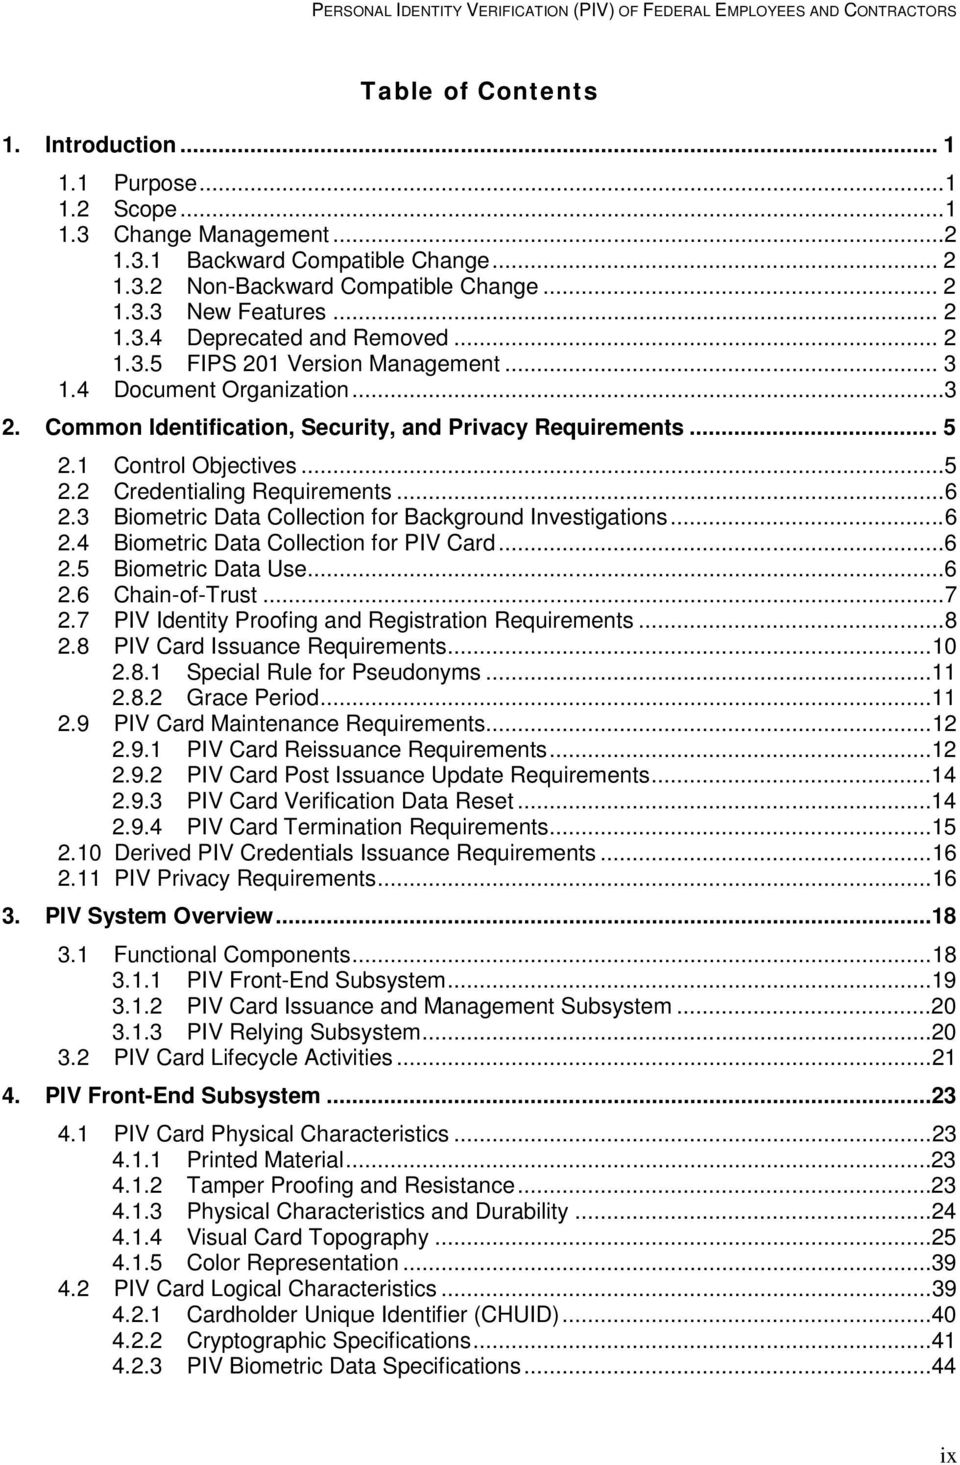 .. 5 2.2 Credentialing Requirements... 6 2.3 Biometric Data Collection for Background Investigations... 6 2.4 Biometric Data Collection for PIV Card... 6 2.5 Biometric Data Use... 6 2.6 Chain-of-Trust.